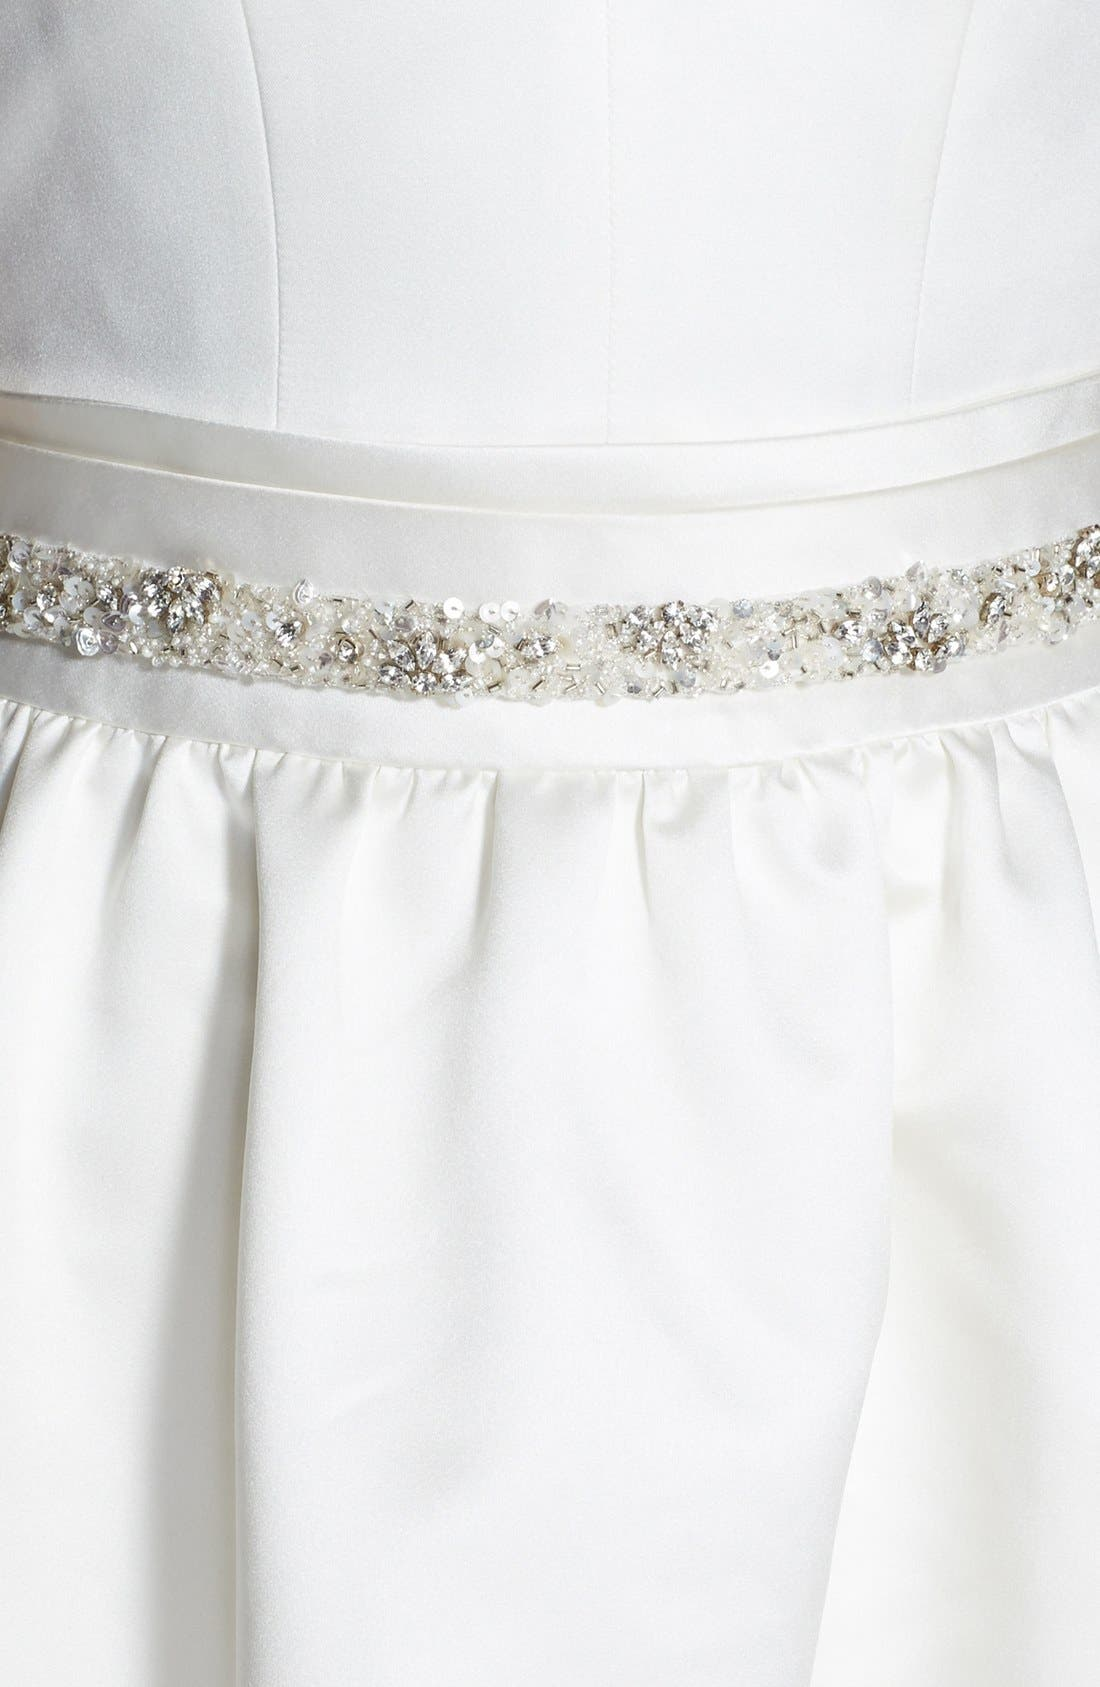 Alternate Image 3  - Jesús Peiró Satin Dress with Embellished Waist Overskirt (In Stores Only)